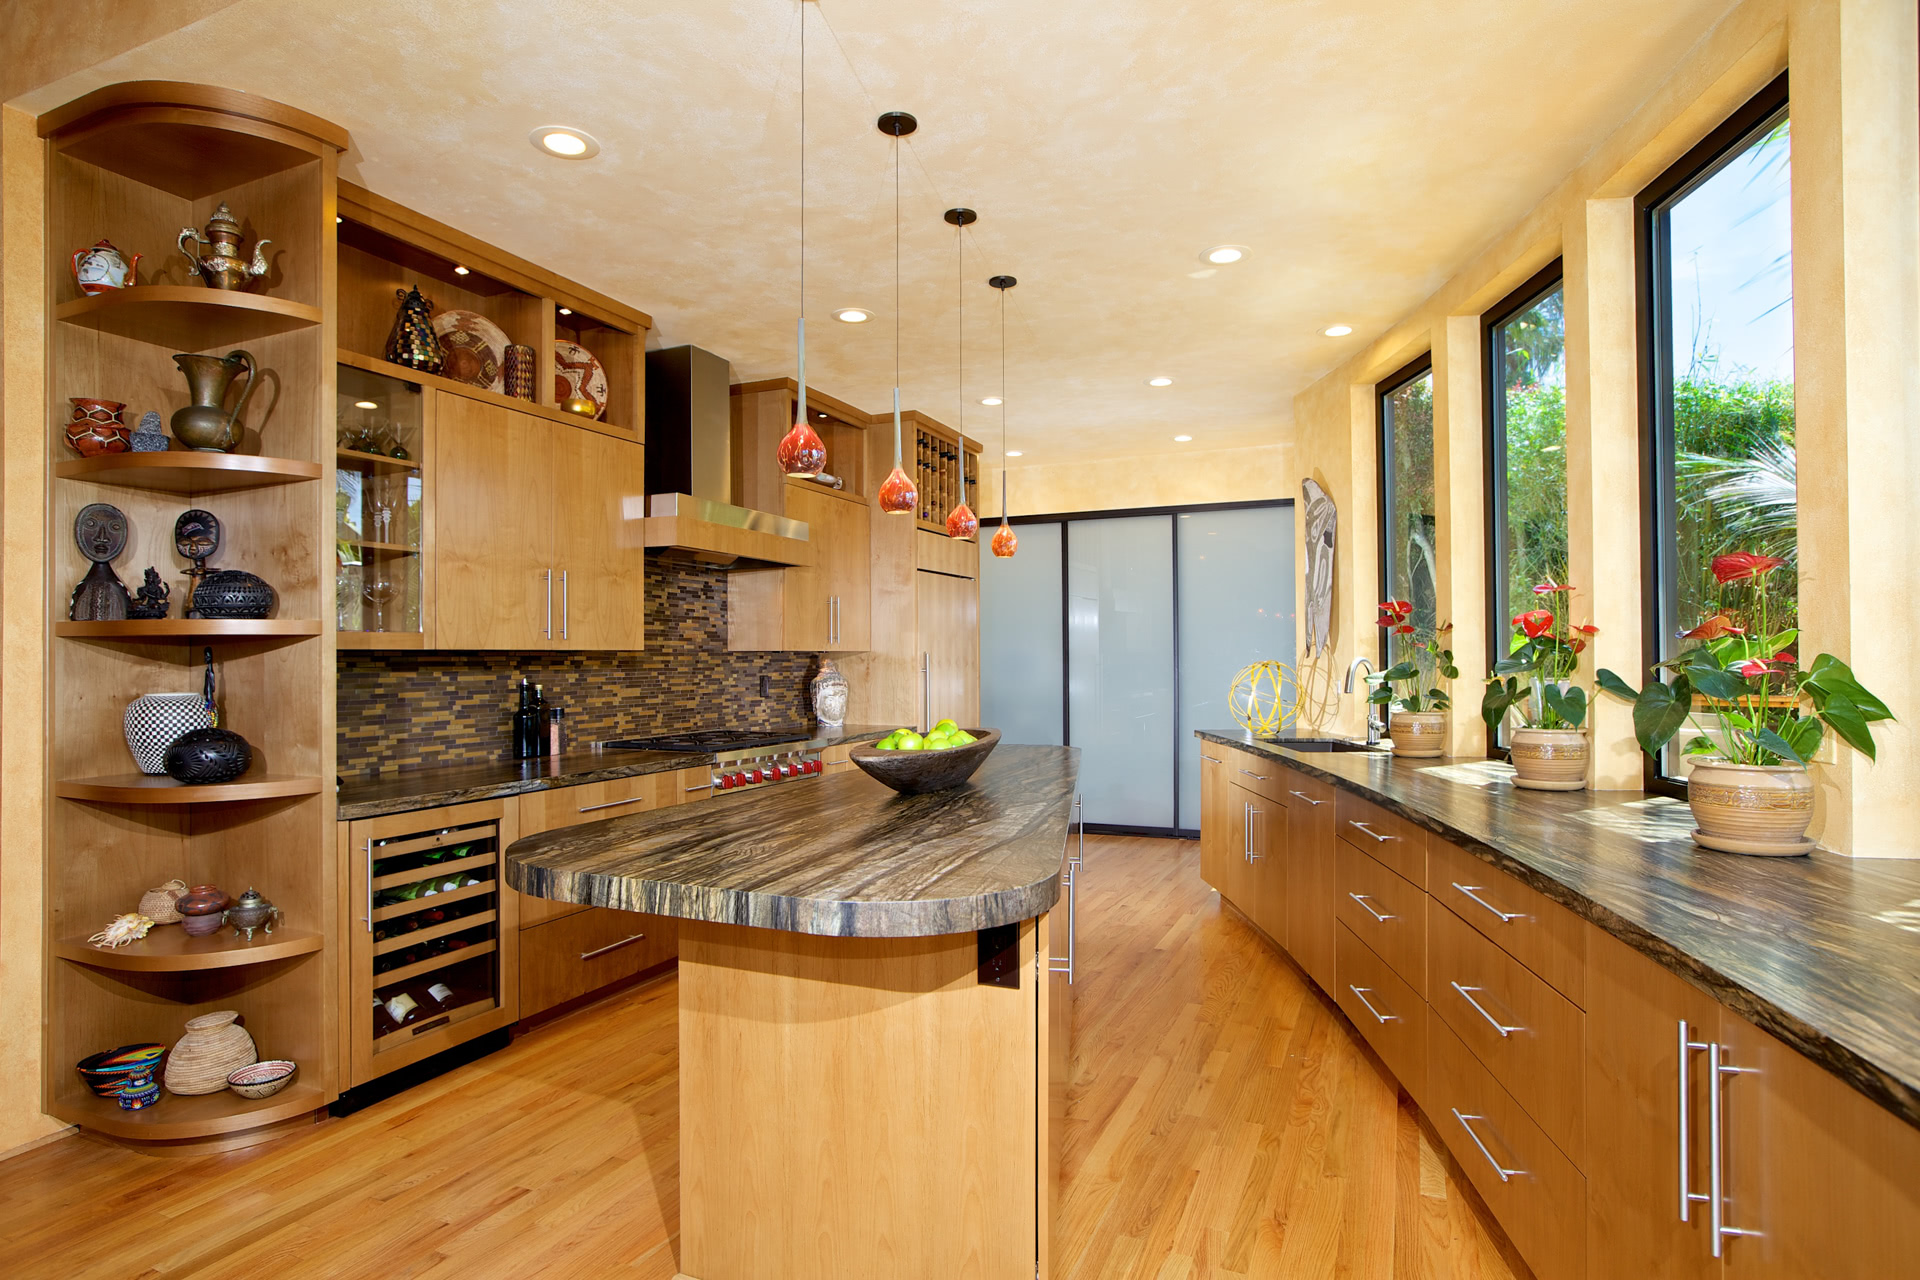 kitchen cabinets with alder wood clear finish bookmatched and flat doors - Alder Kitchen Cabinets